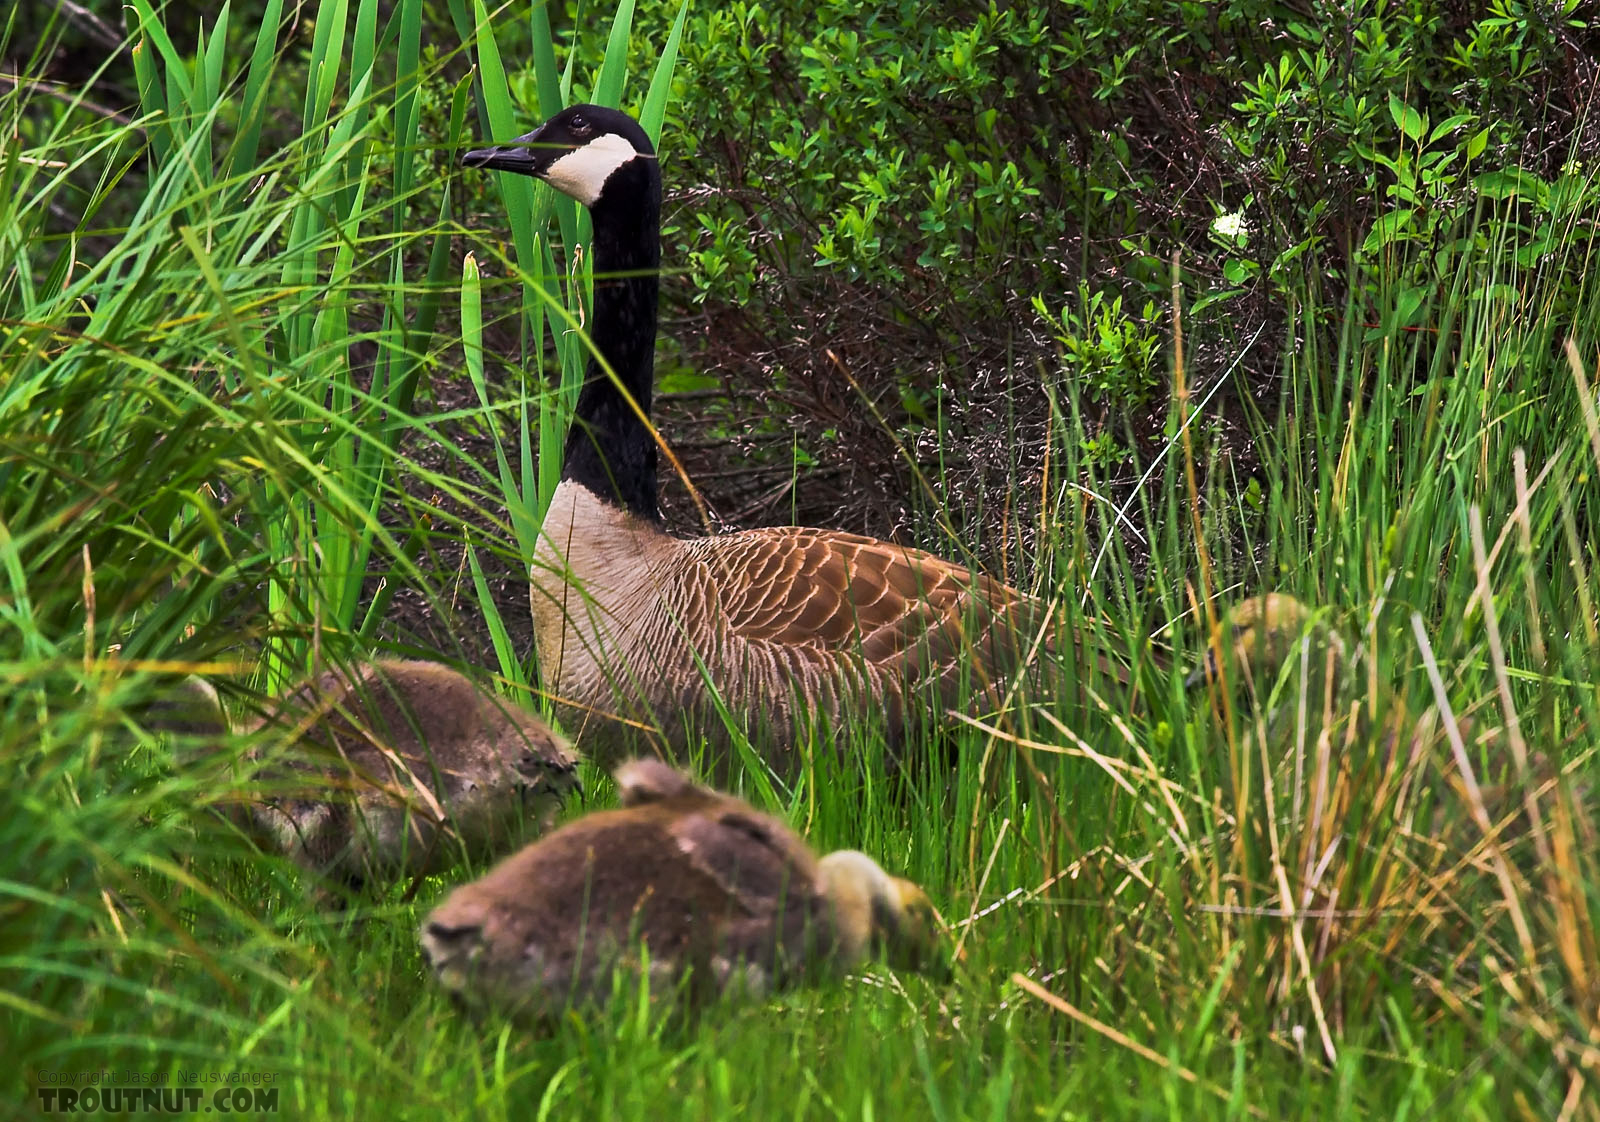 A canada goose looks over some large, downy goslings. From the Bois Brule River in Wisconsin.